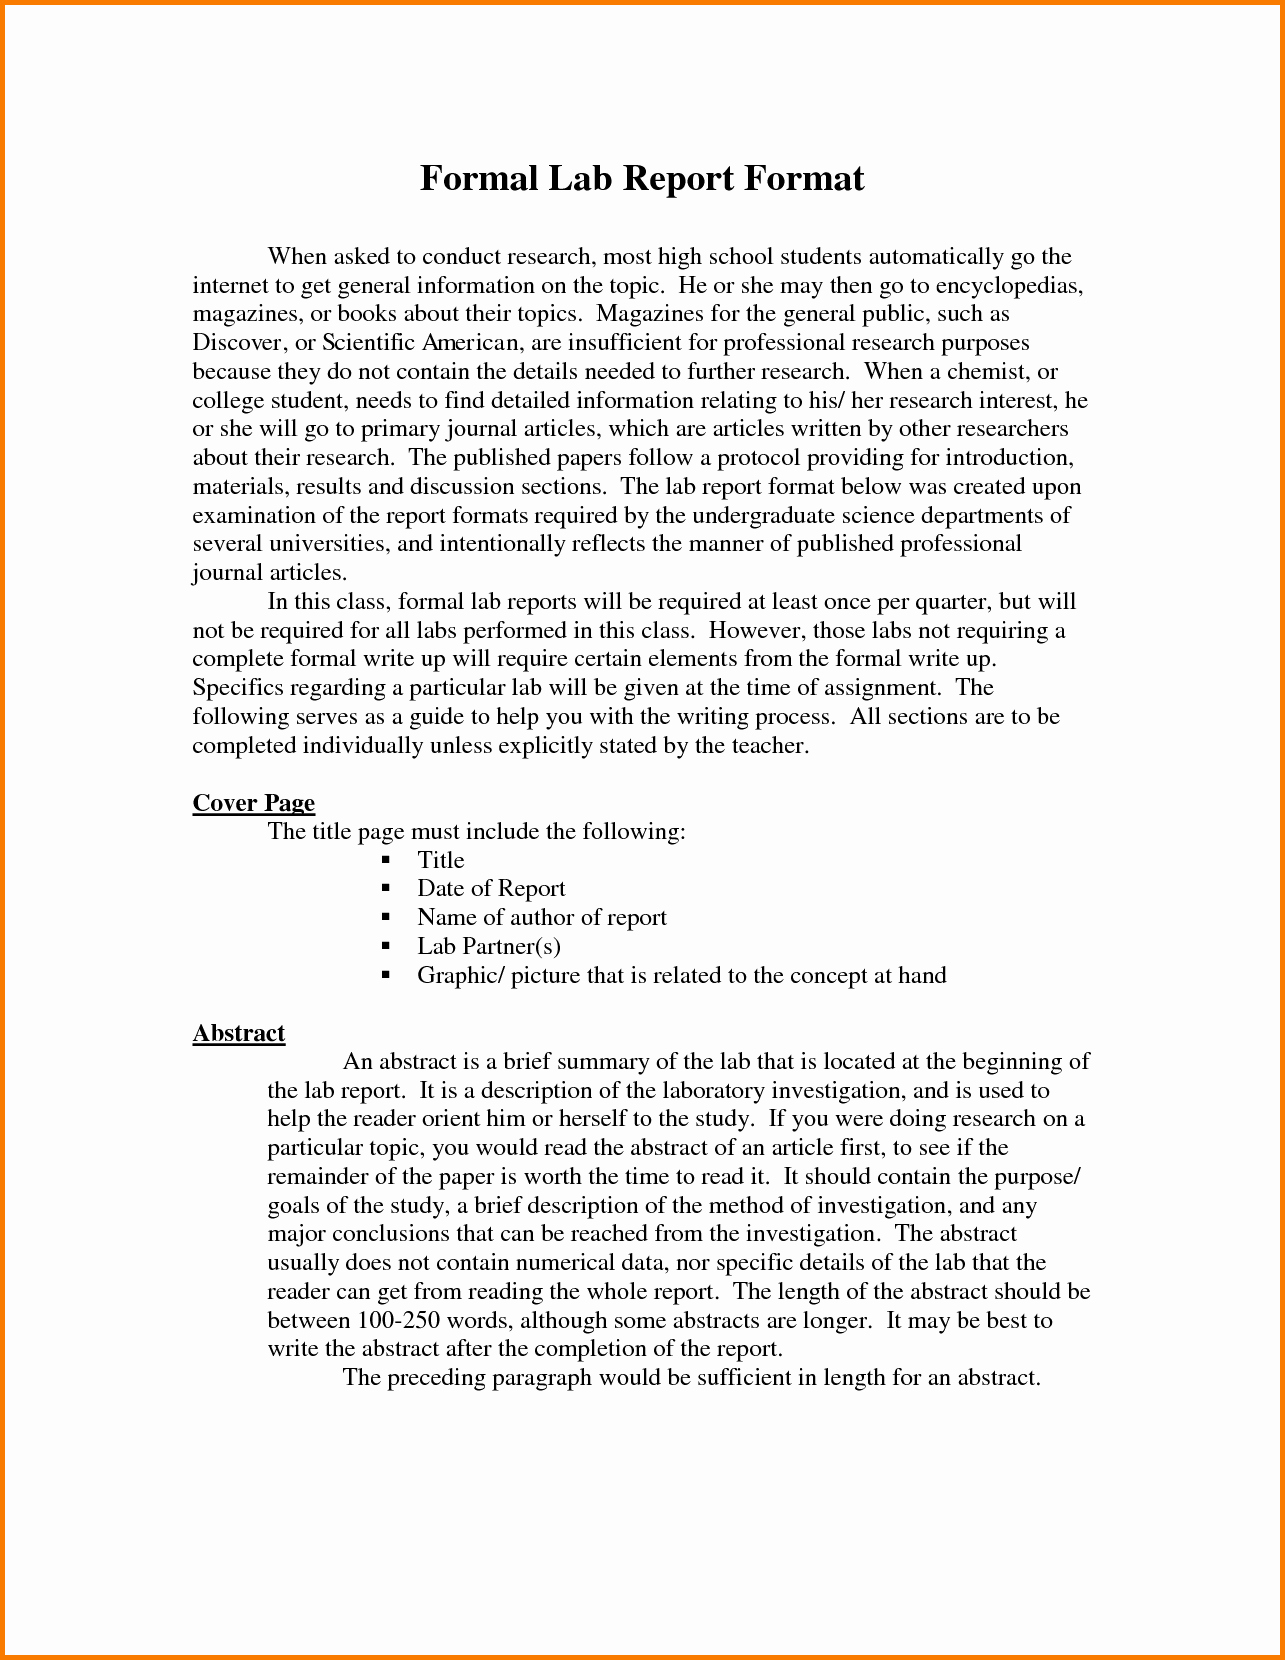 Formal Lab Report Template Fresh formal Lab Report Layout Mfacourses887 Web Fc2